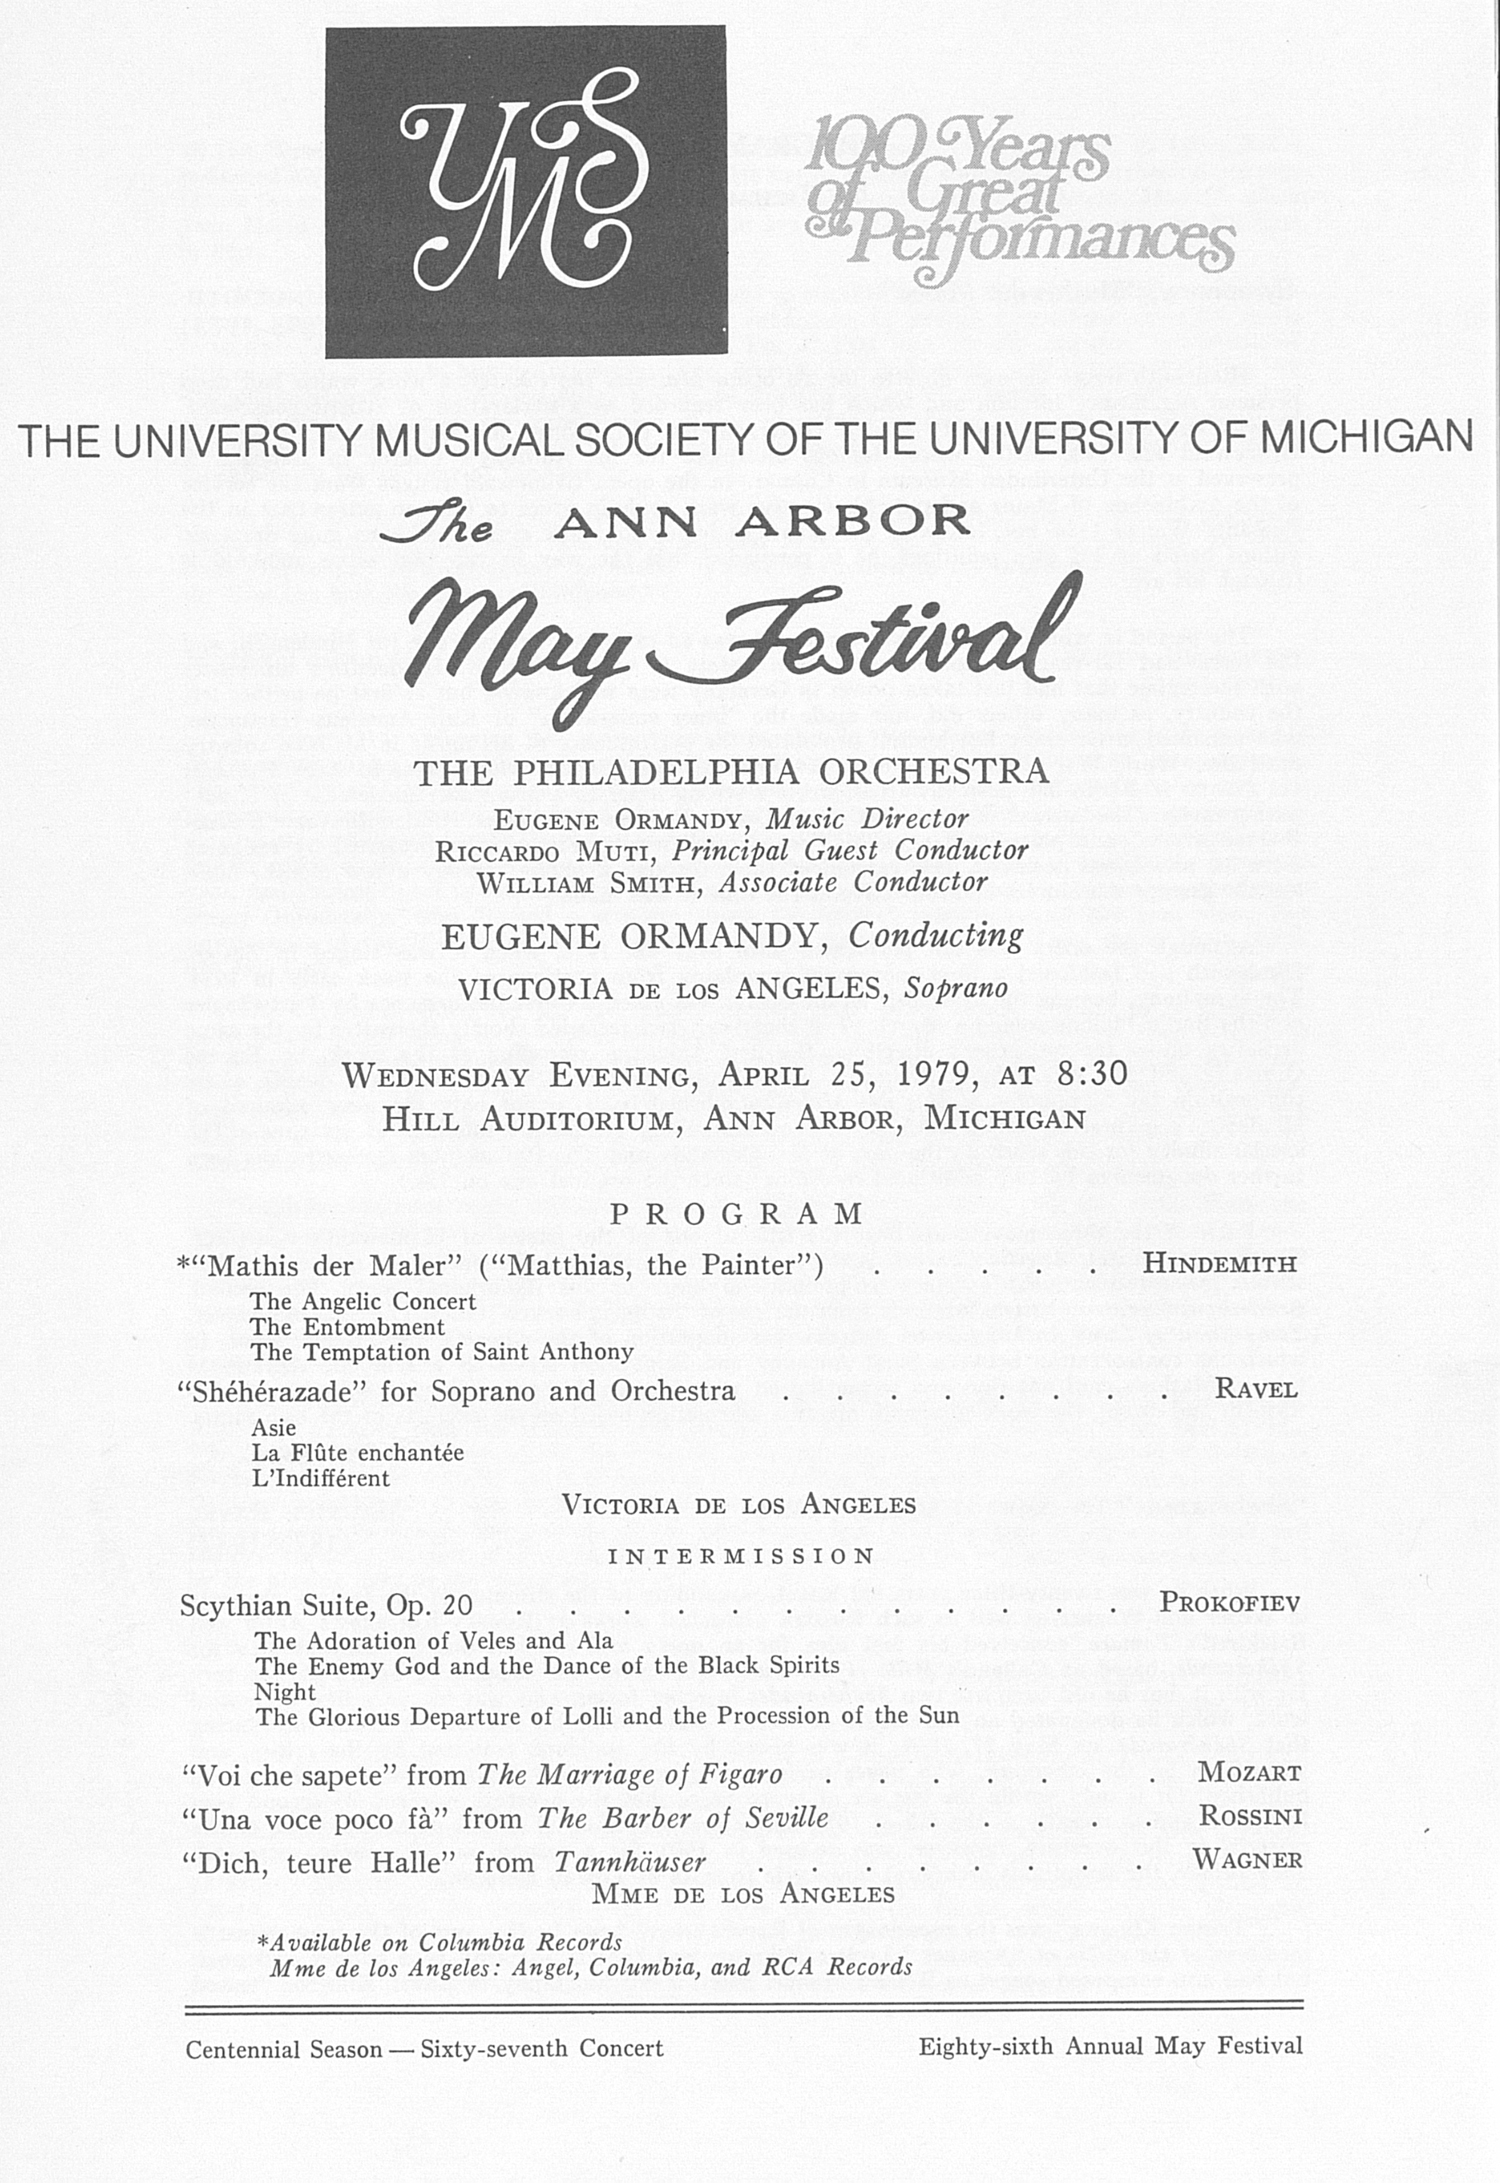 UMS Concert Program, April 25, 1979: The Ann Arbor May Festival -- The Philadelphia Orchestra image